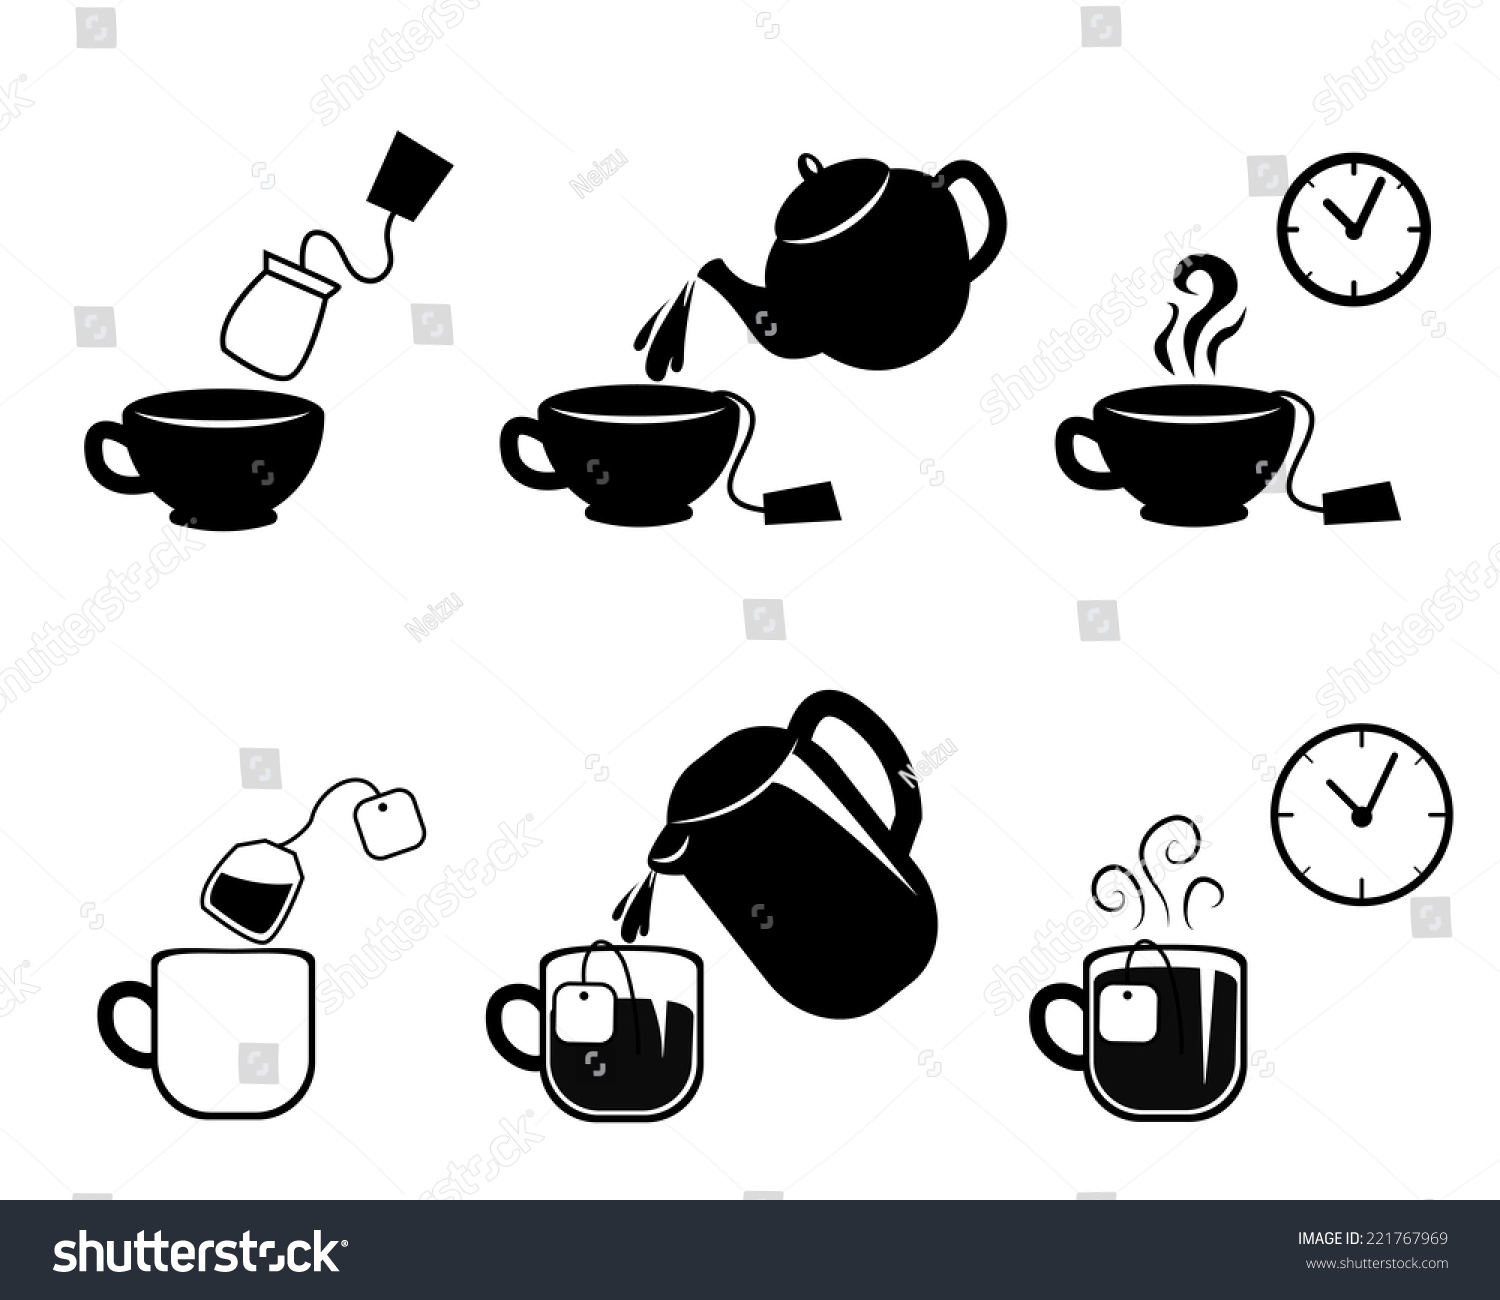 instruction making tea vector icons stock vector royalty free 221767969 https www shutterstock com image vector instruction making tea vector icons 221767969